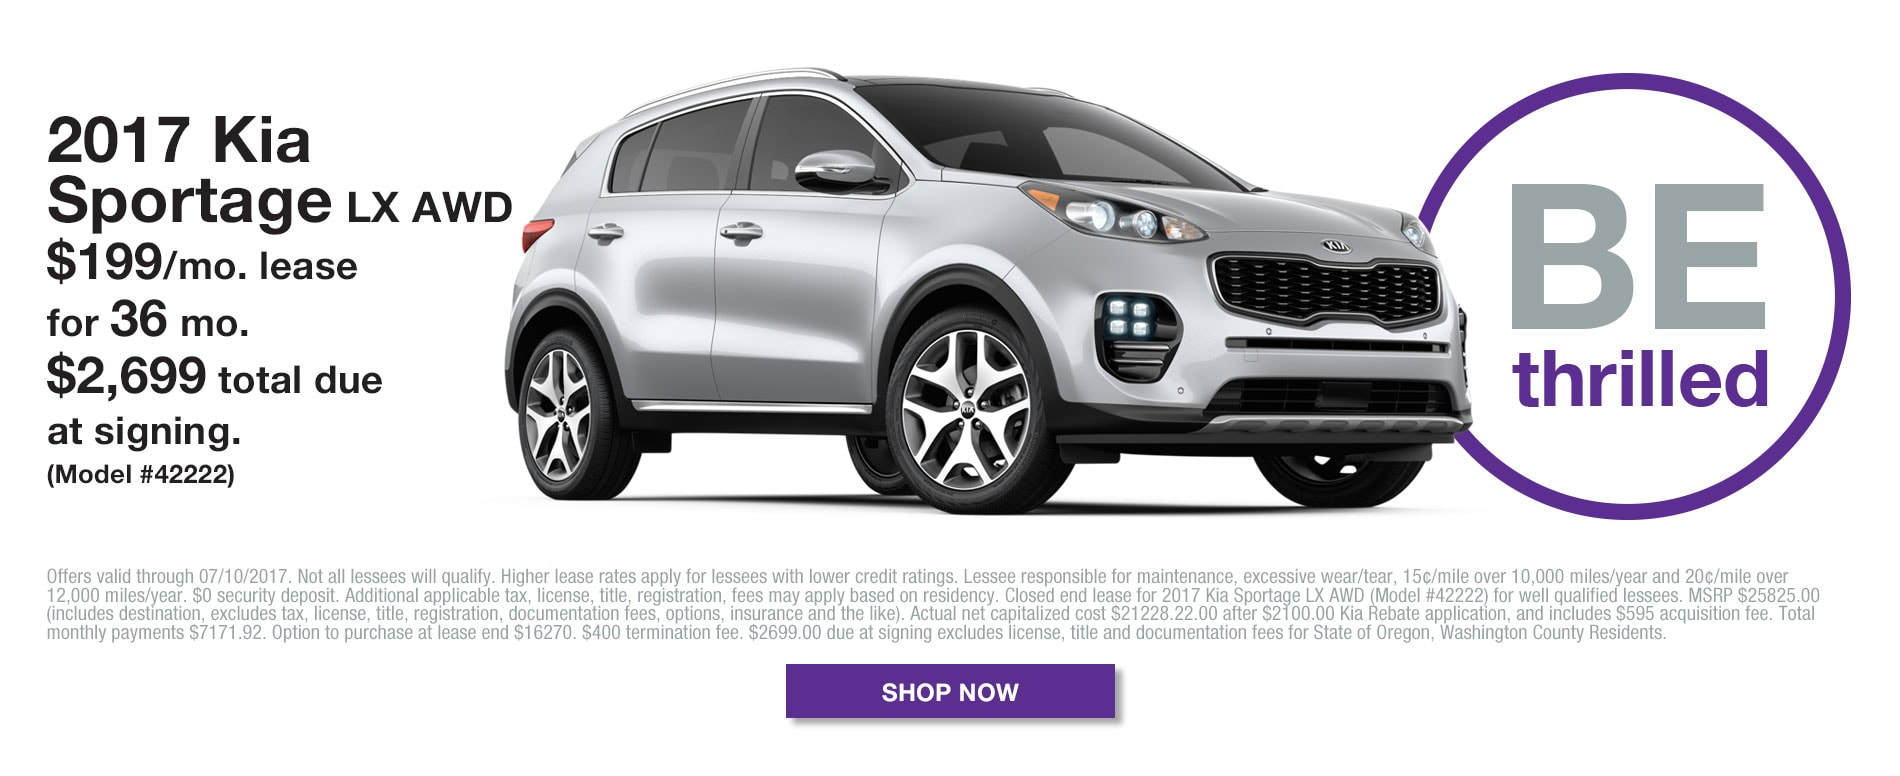 2017 Kia Sportage LX - Model# 42422 - Lease for $199/mo for 36 months with $2699 due at signing.